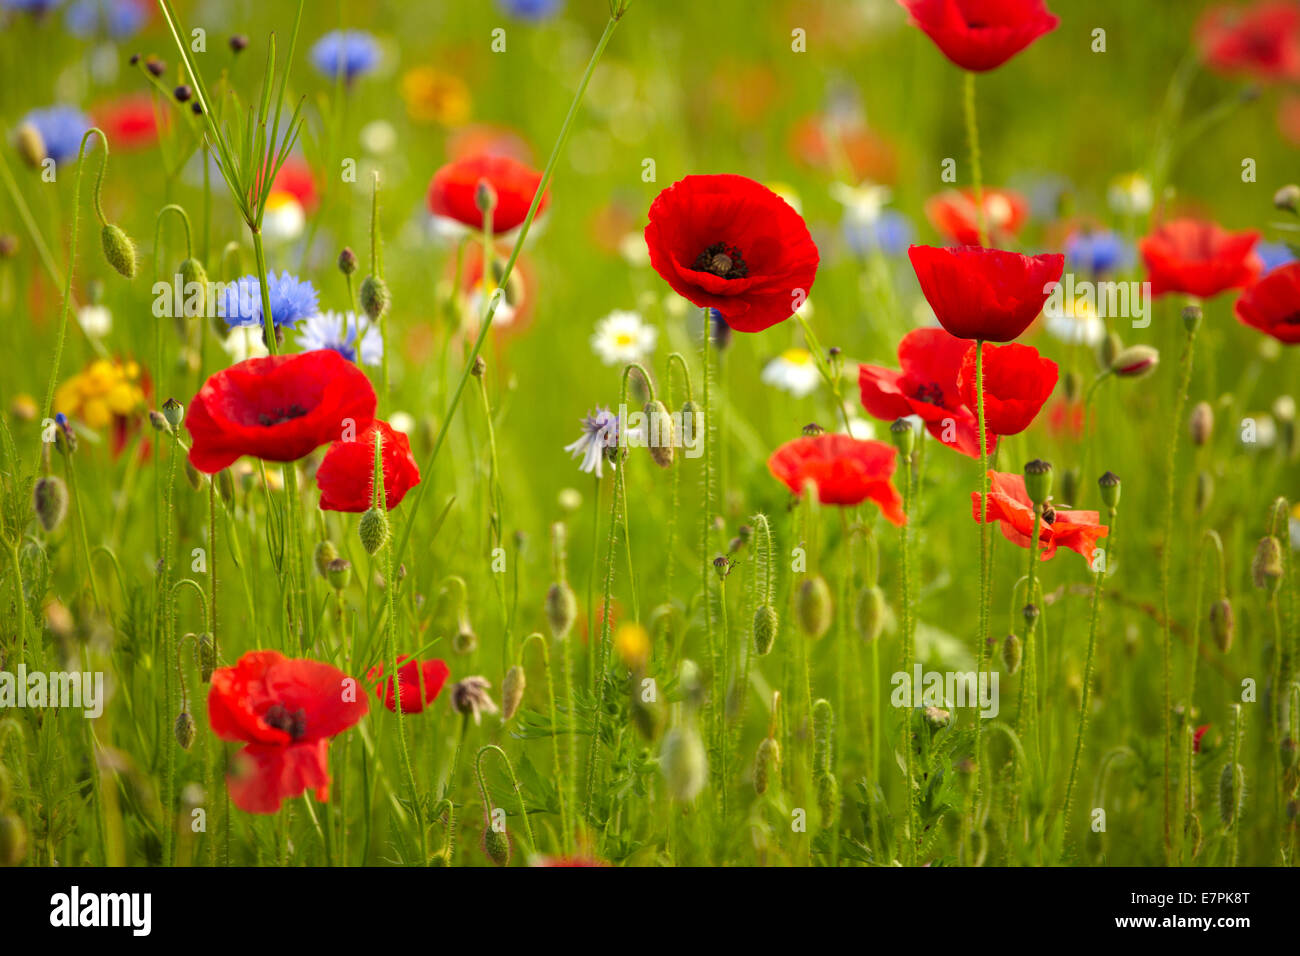 Poppies, cornflowers and other wild flowers. - Stock Image